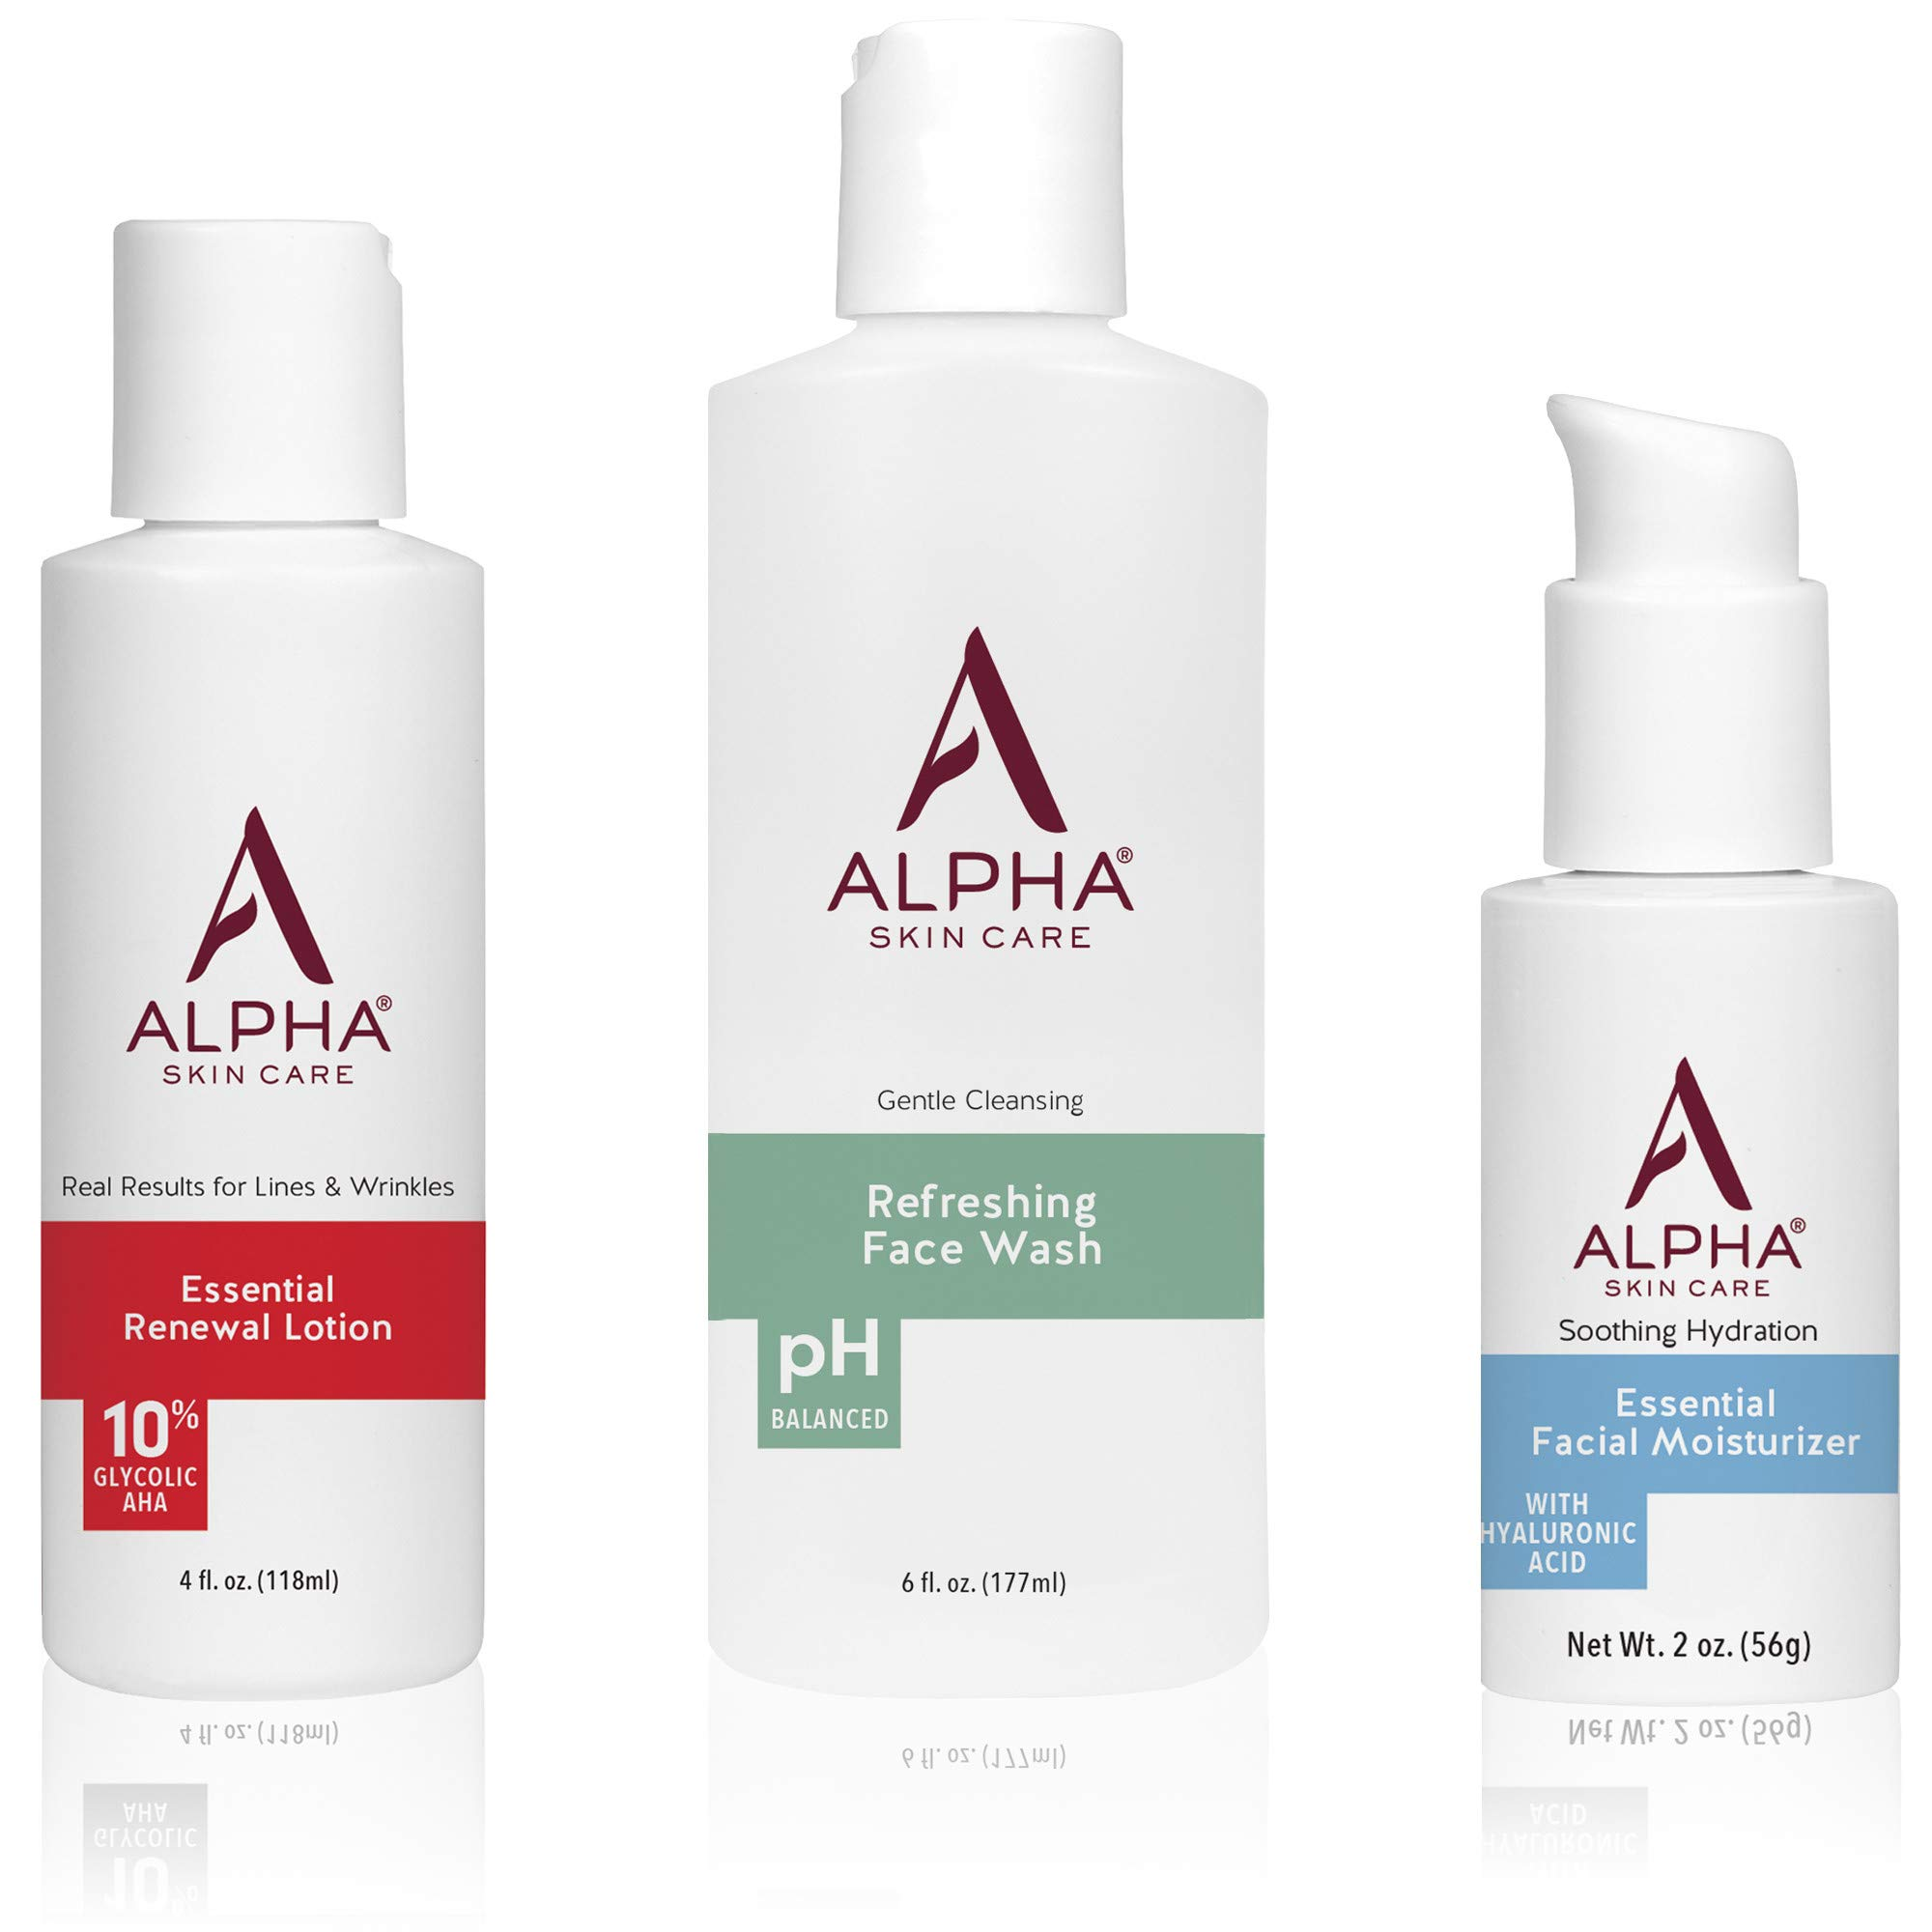 Alpha Skin Care- Introductory Kit | Refreshing Face Wash, Essential Renewal Lotion, Essential Facial Moisturizer | Basic Daily Skin Care Routine for all Skin Types by Alpha Skin Care